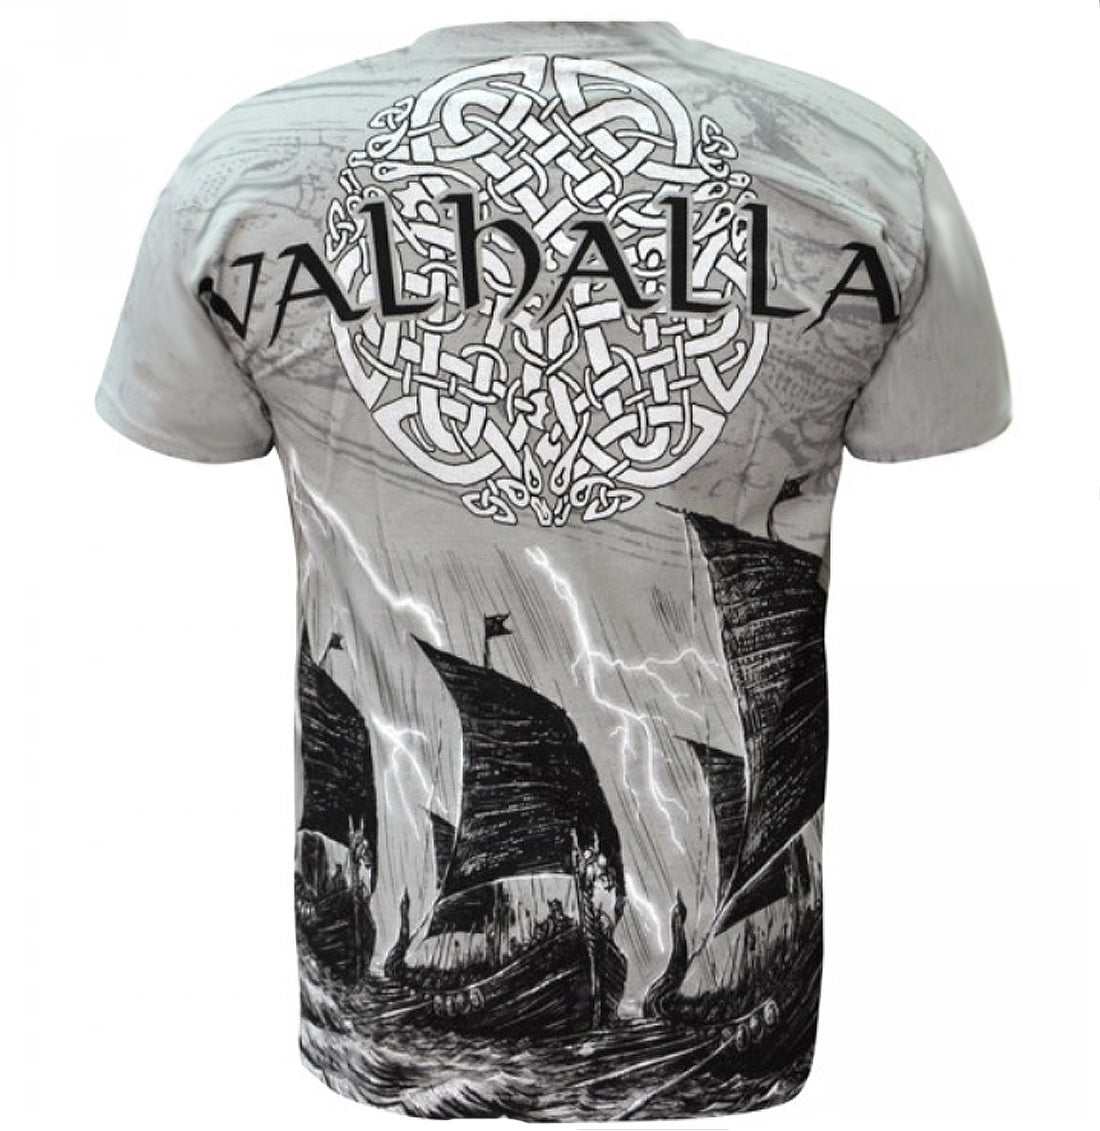 Aquila VIKING VALHALLA Mens Grey T Shirt